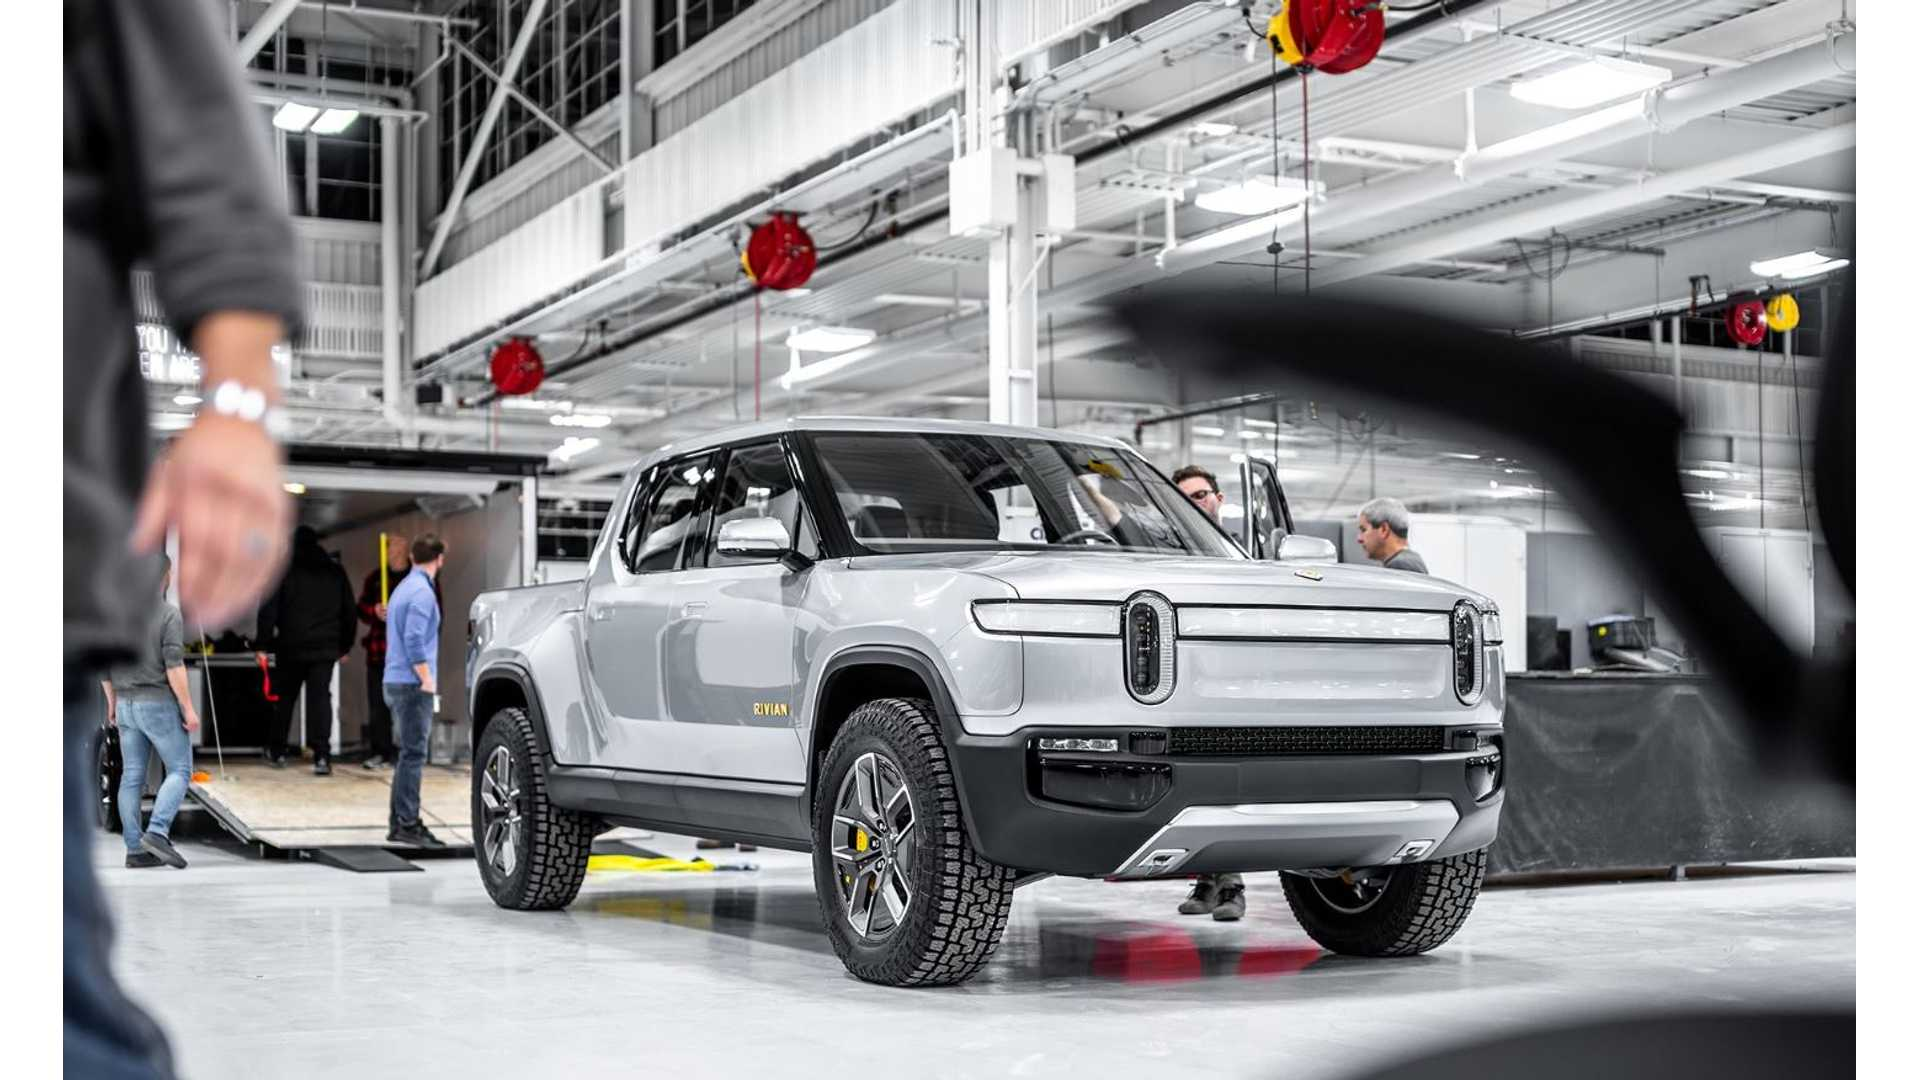 Rivian R1T Is Listed As One Of The 10 Don't-Miss Pickups For 2020